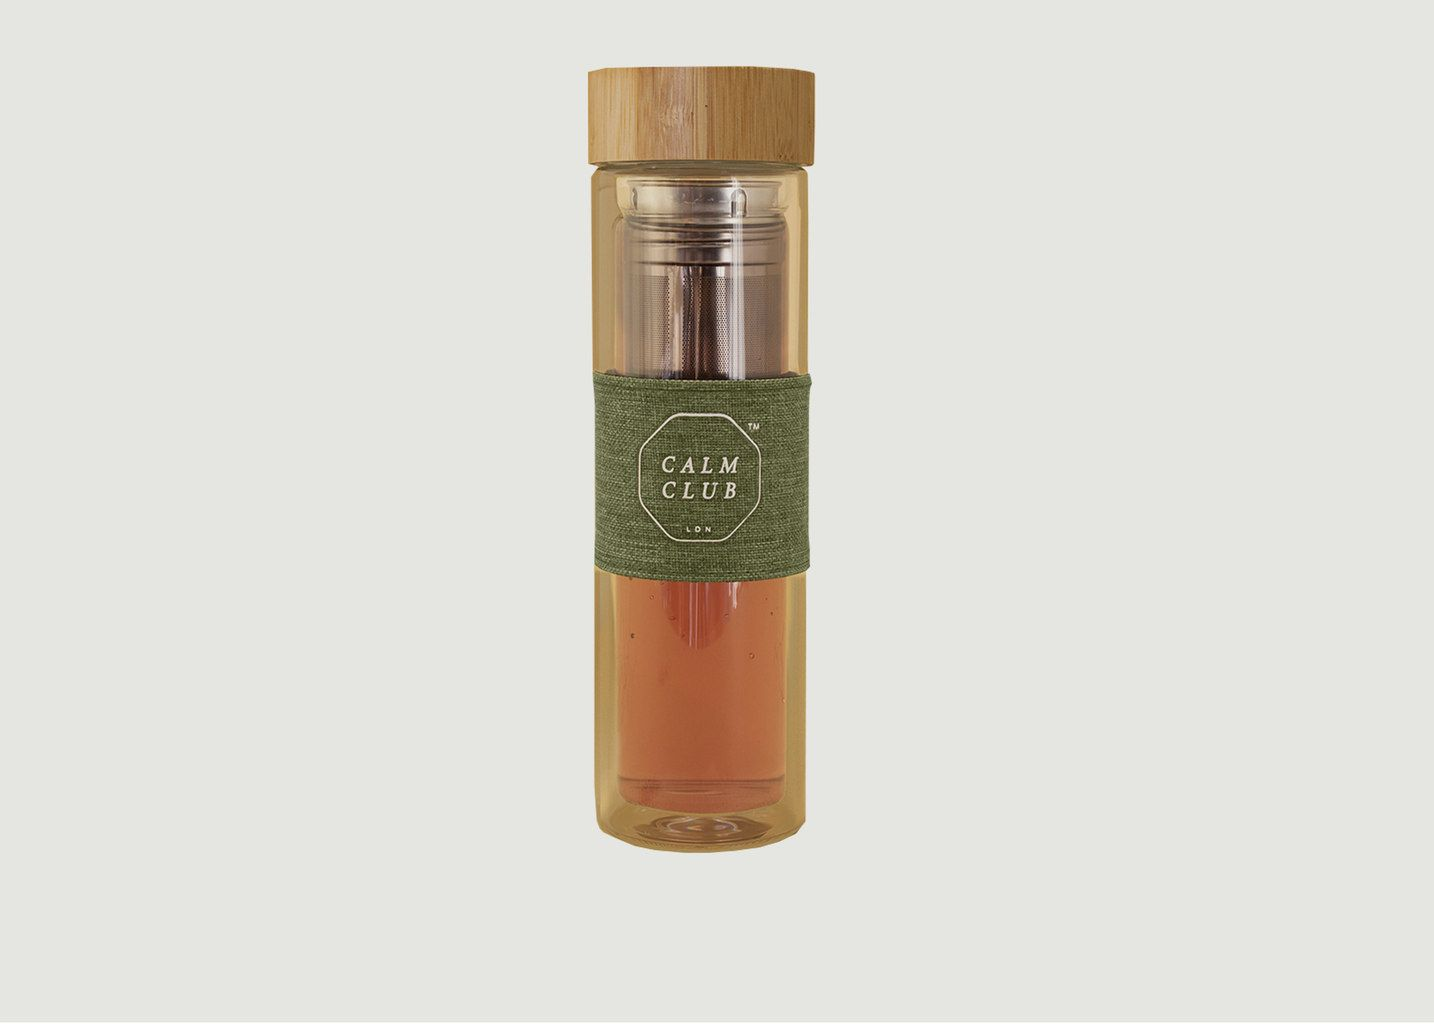 Infuseur Thé Bambou - Calm Club by Luckies